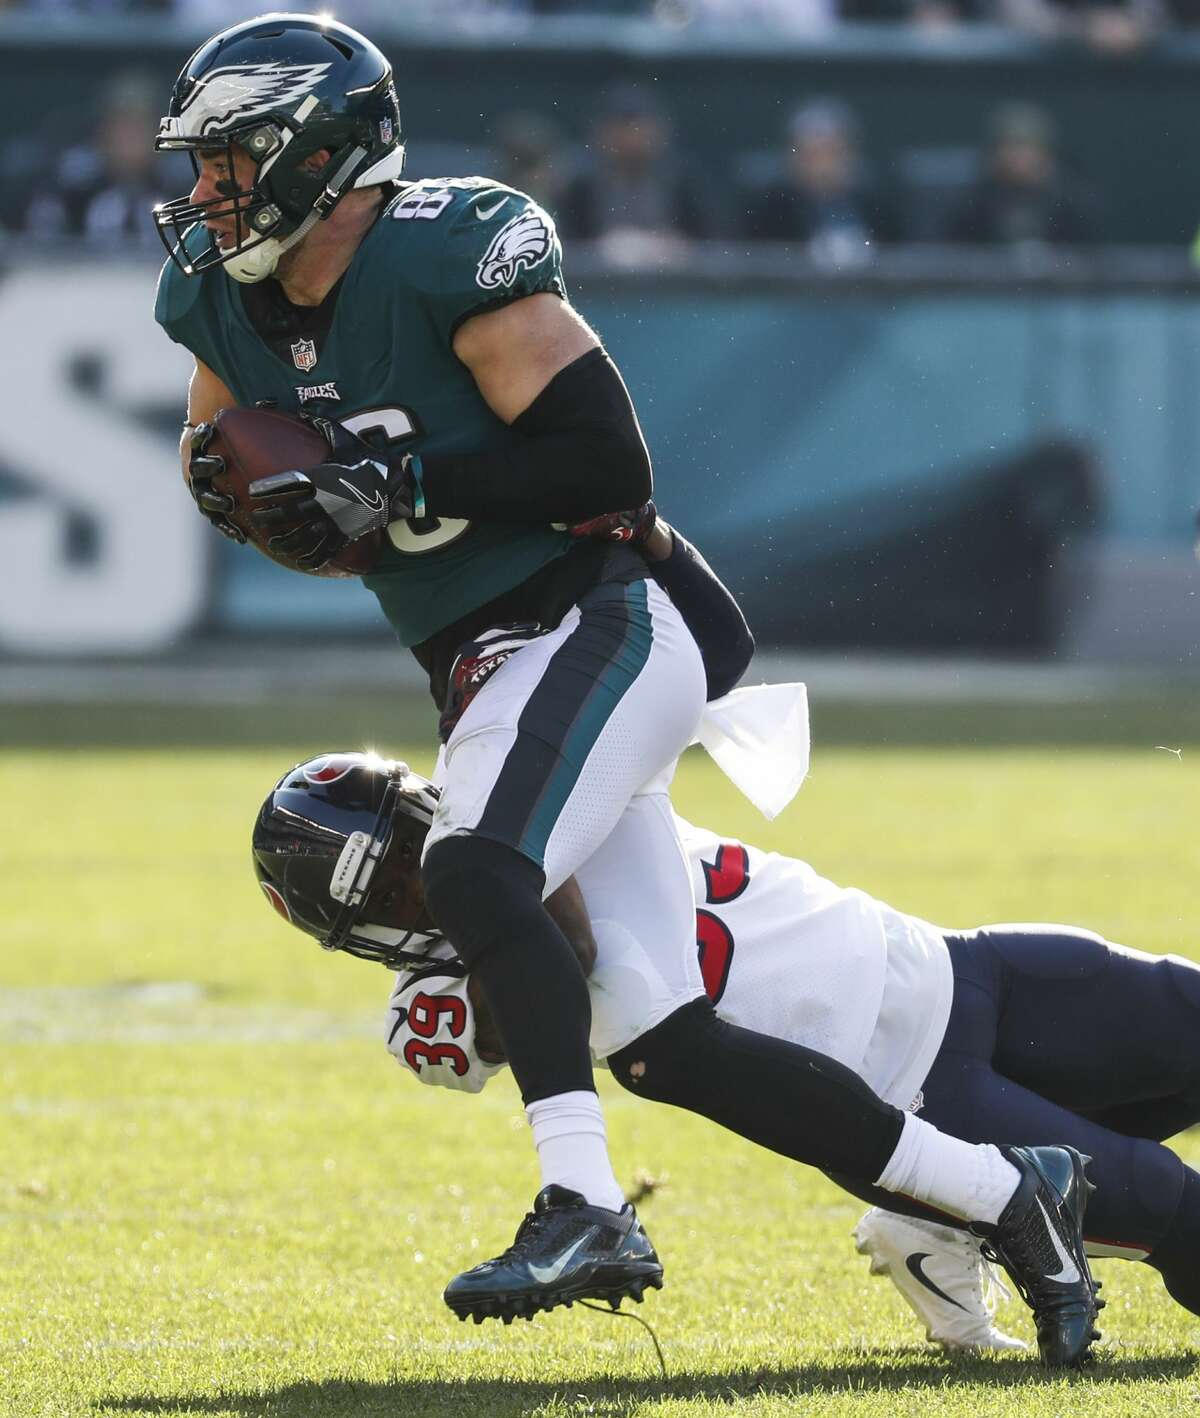 Philadelphia Eagles tight end Zach Ertz (86) makes a first down reception against Houston Texans defensive back Deante Burton (39) during the first half of an NFL football game at Lincoln Financial Field on Sunday, Dec. 23, 2018, in Philadelphia.